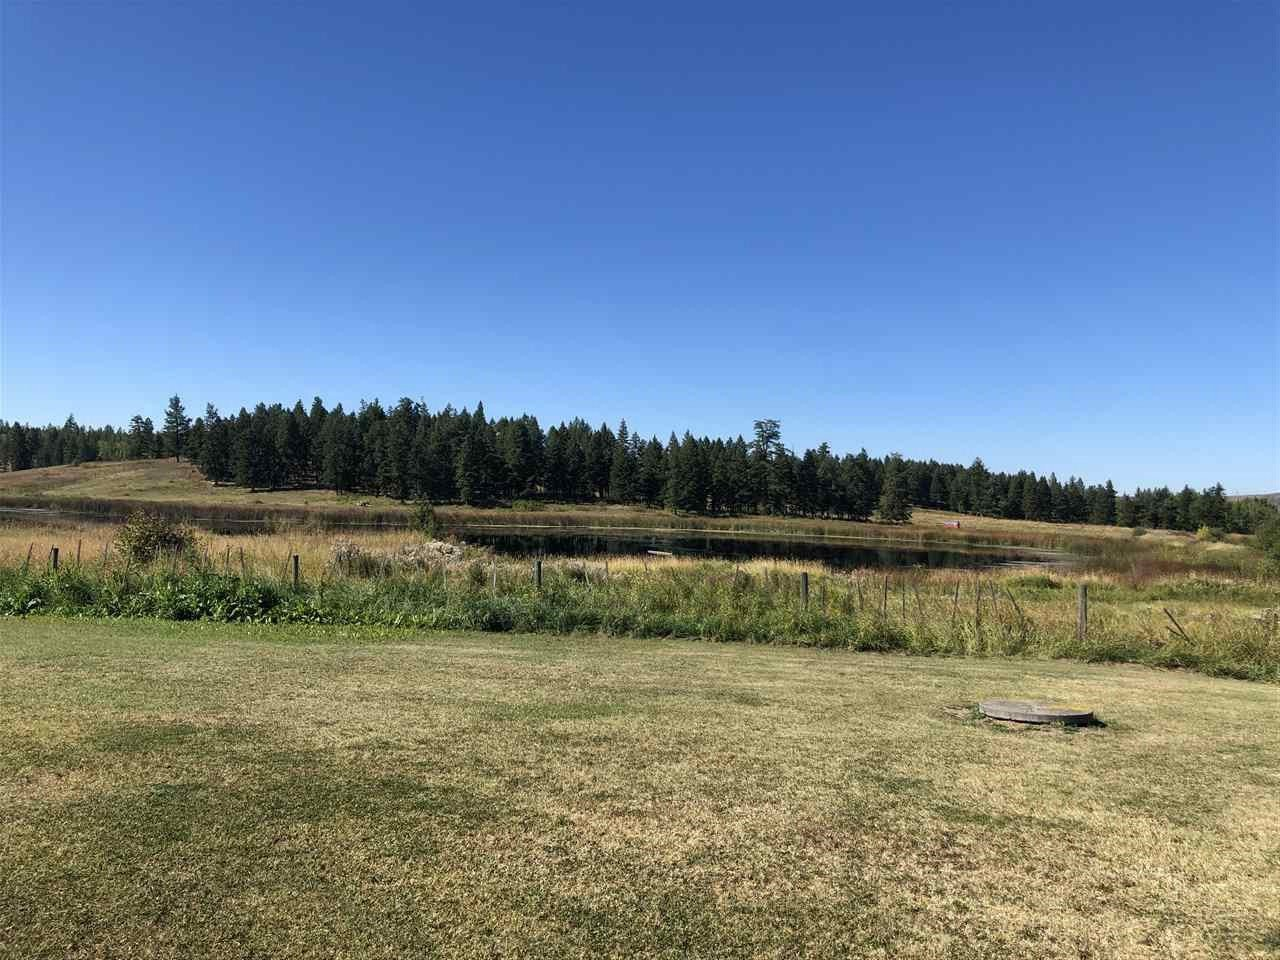 Photo 2: Photos: 3090 150 MILE FRONTAGE Road: 150 Mile House Land Commercial for sale (Williams Lake (Zone 27))  : MLS®# C8034187